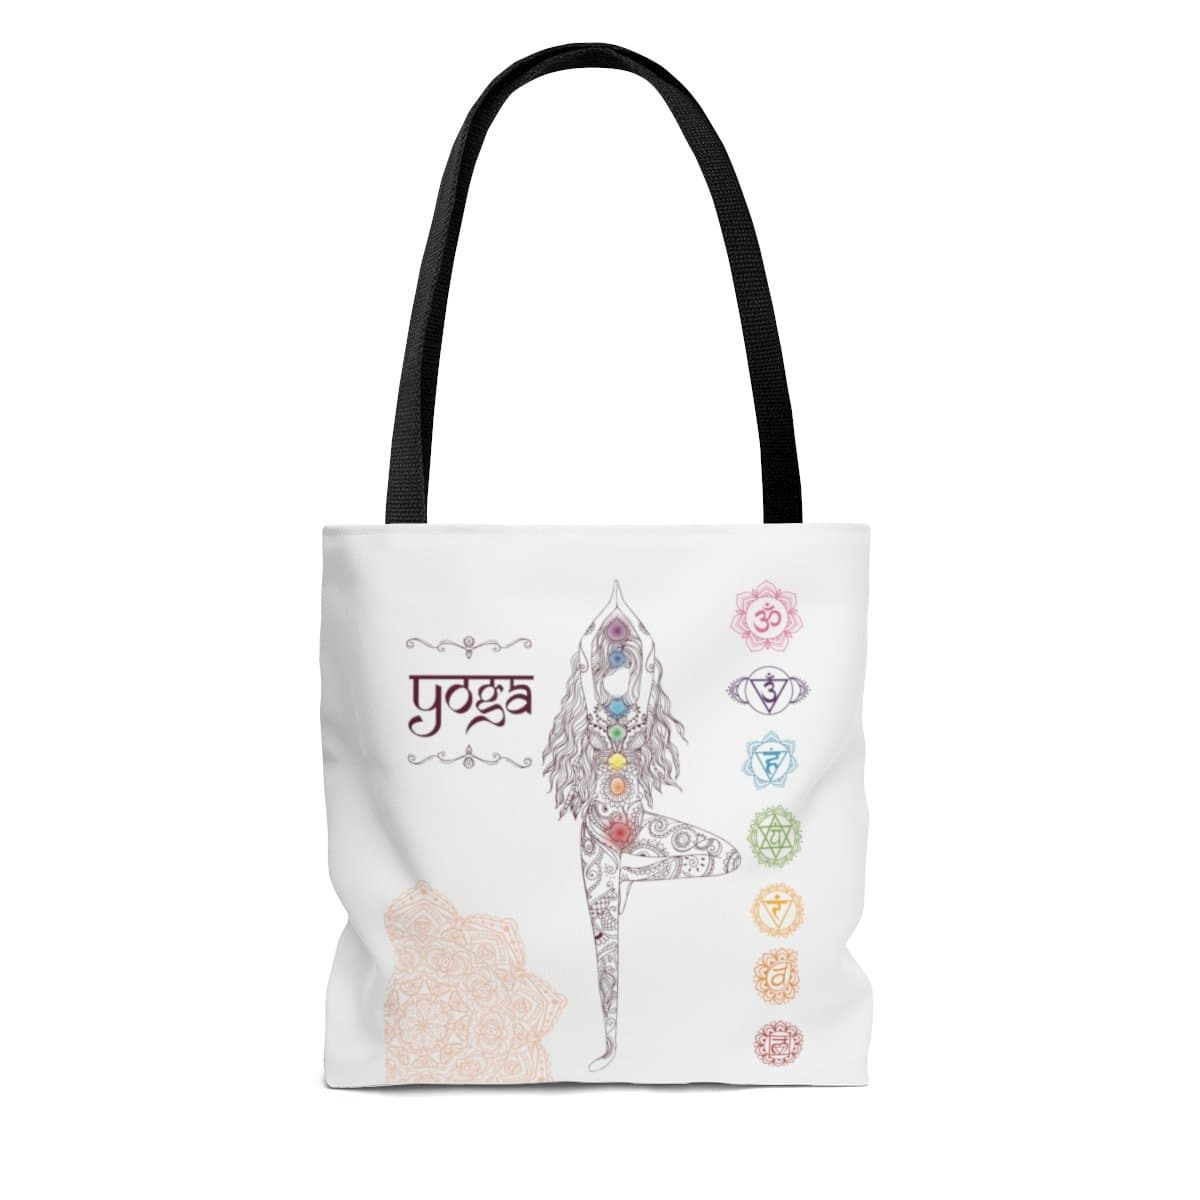 Yoga Tote Bag White - Sutra Wear